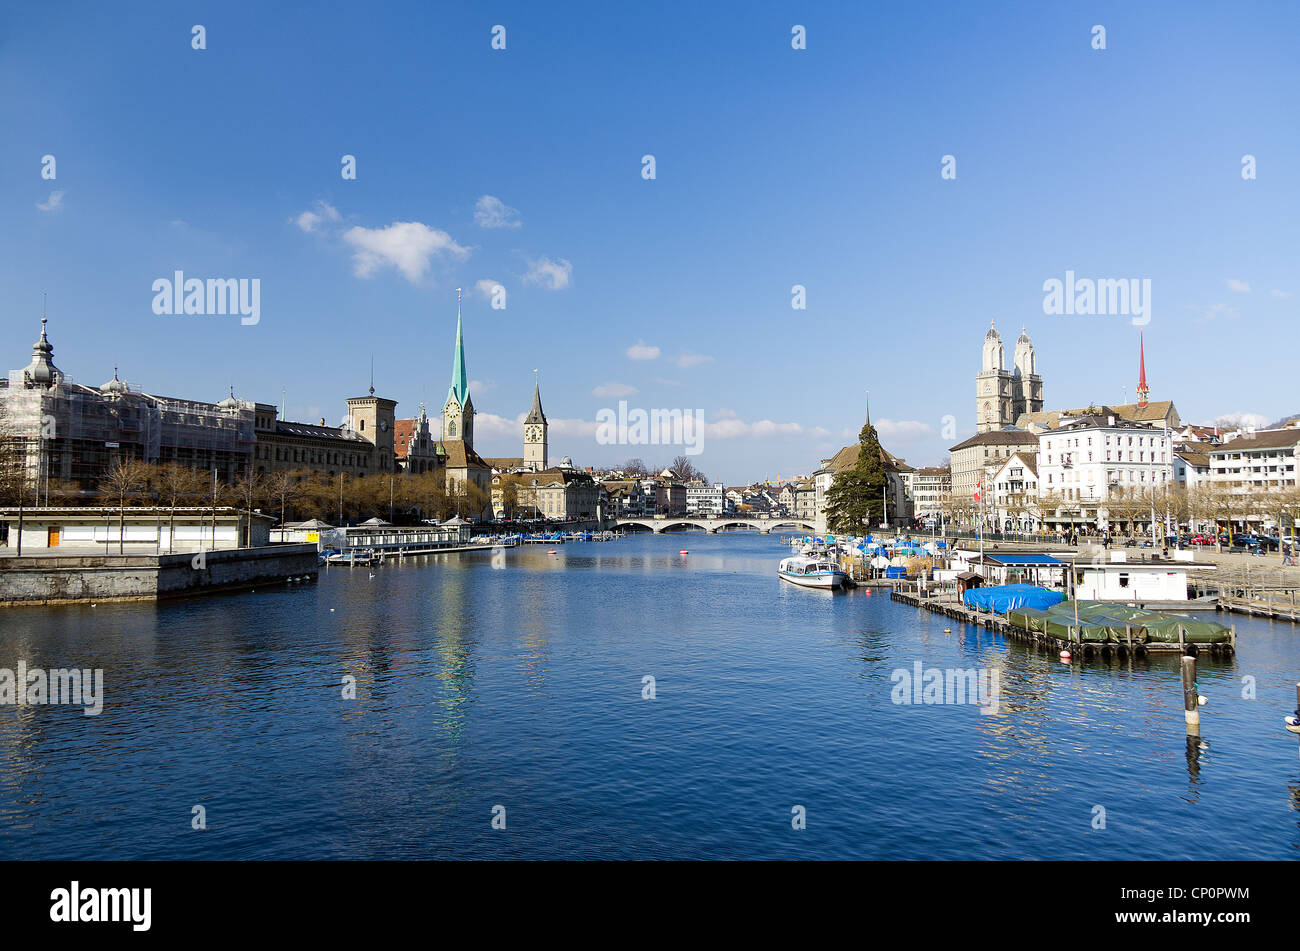 Zurich downdown in broad daylight with churches, river and boats - Stock Image